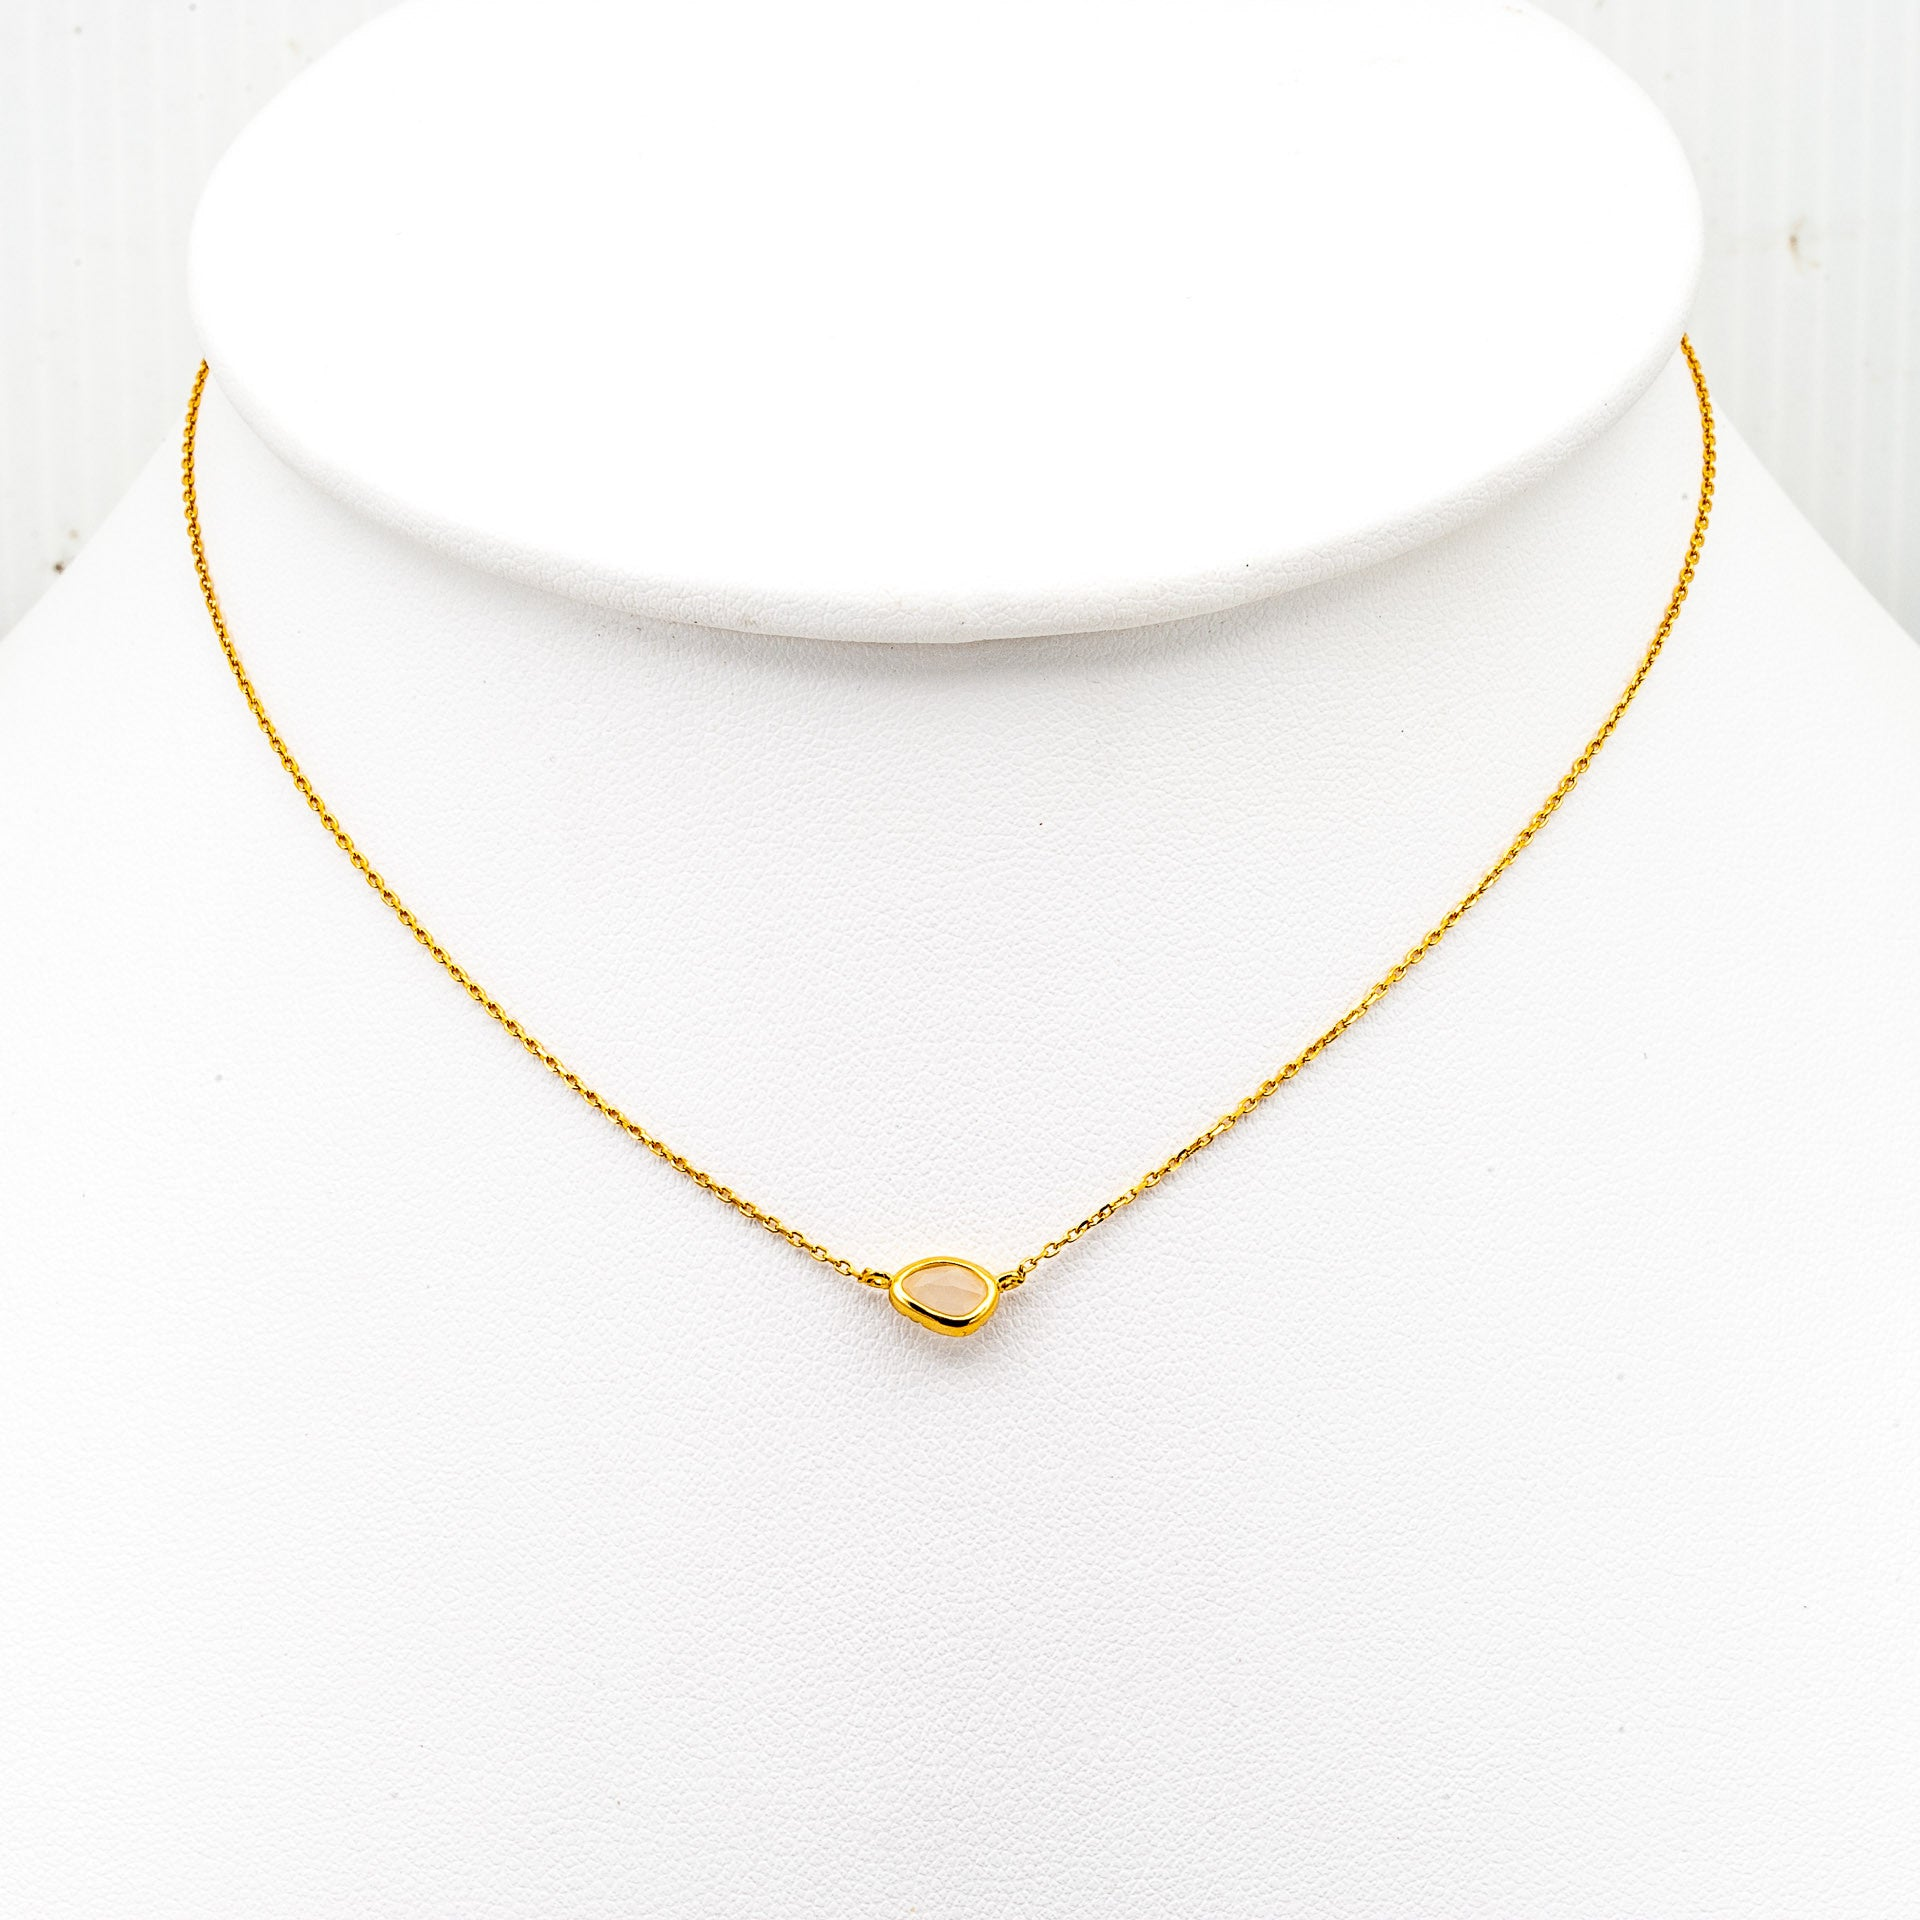 GOLD BEZEL SET MOONSTONE CHOKER